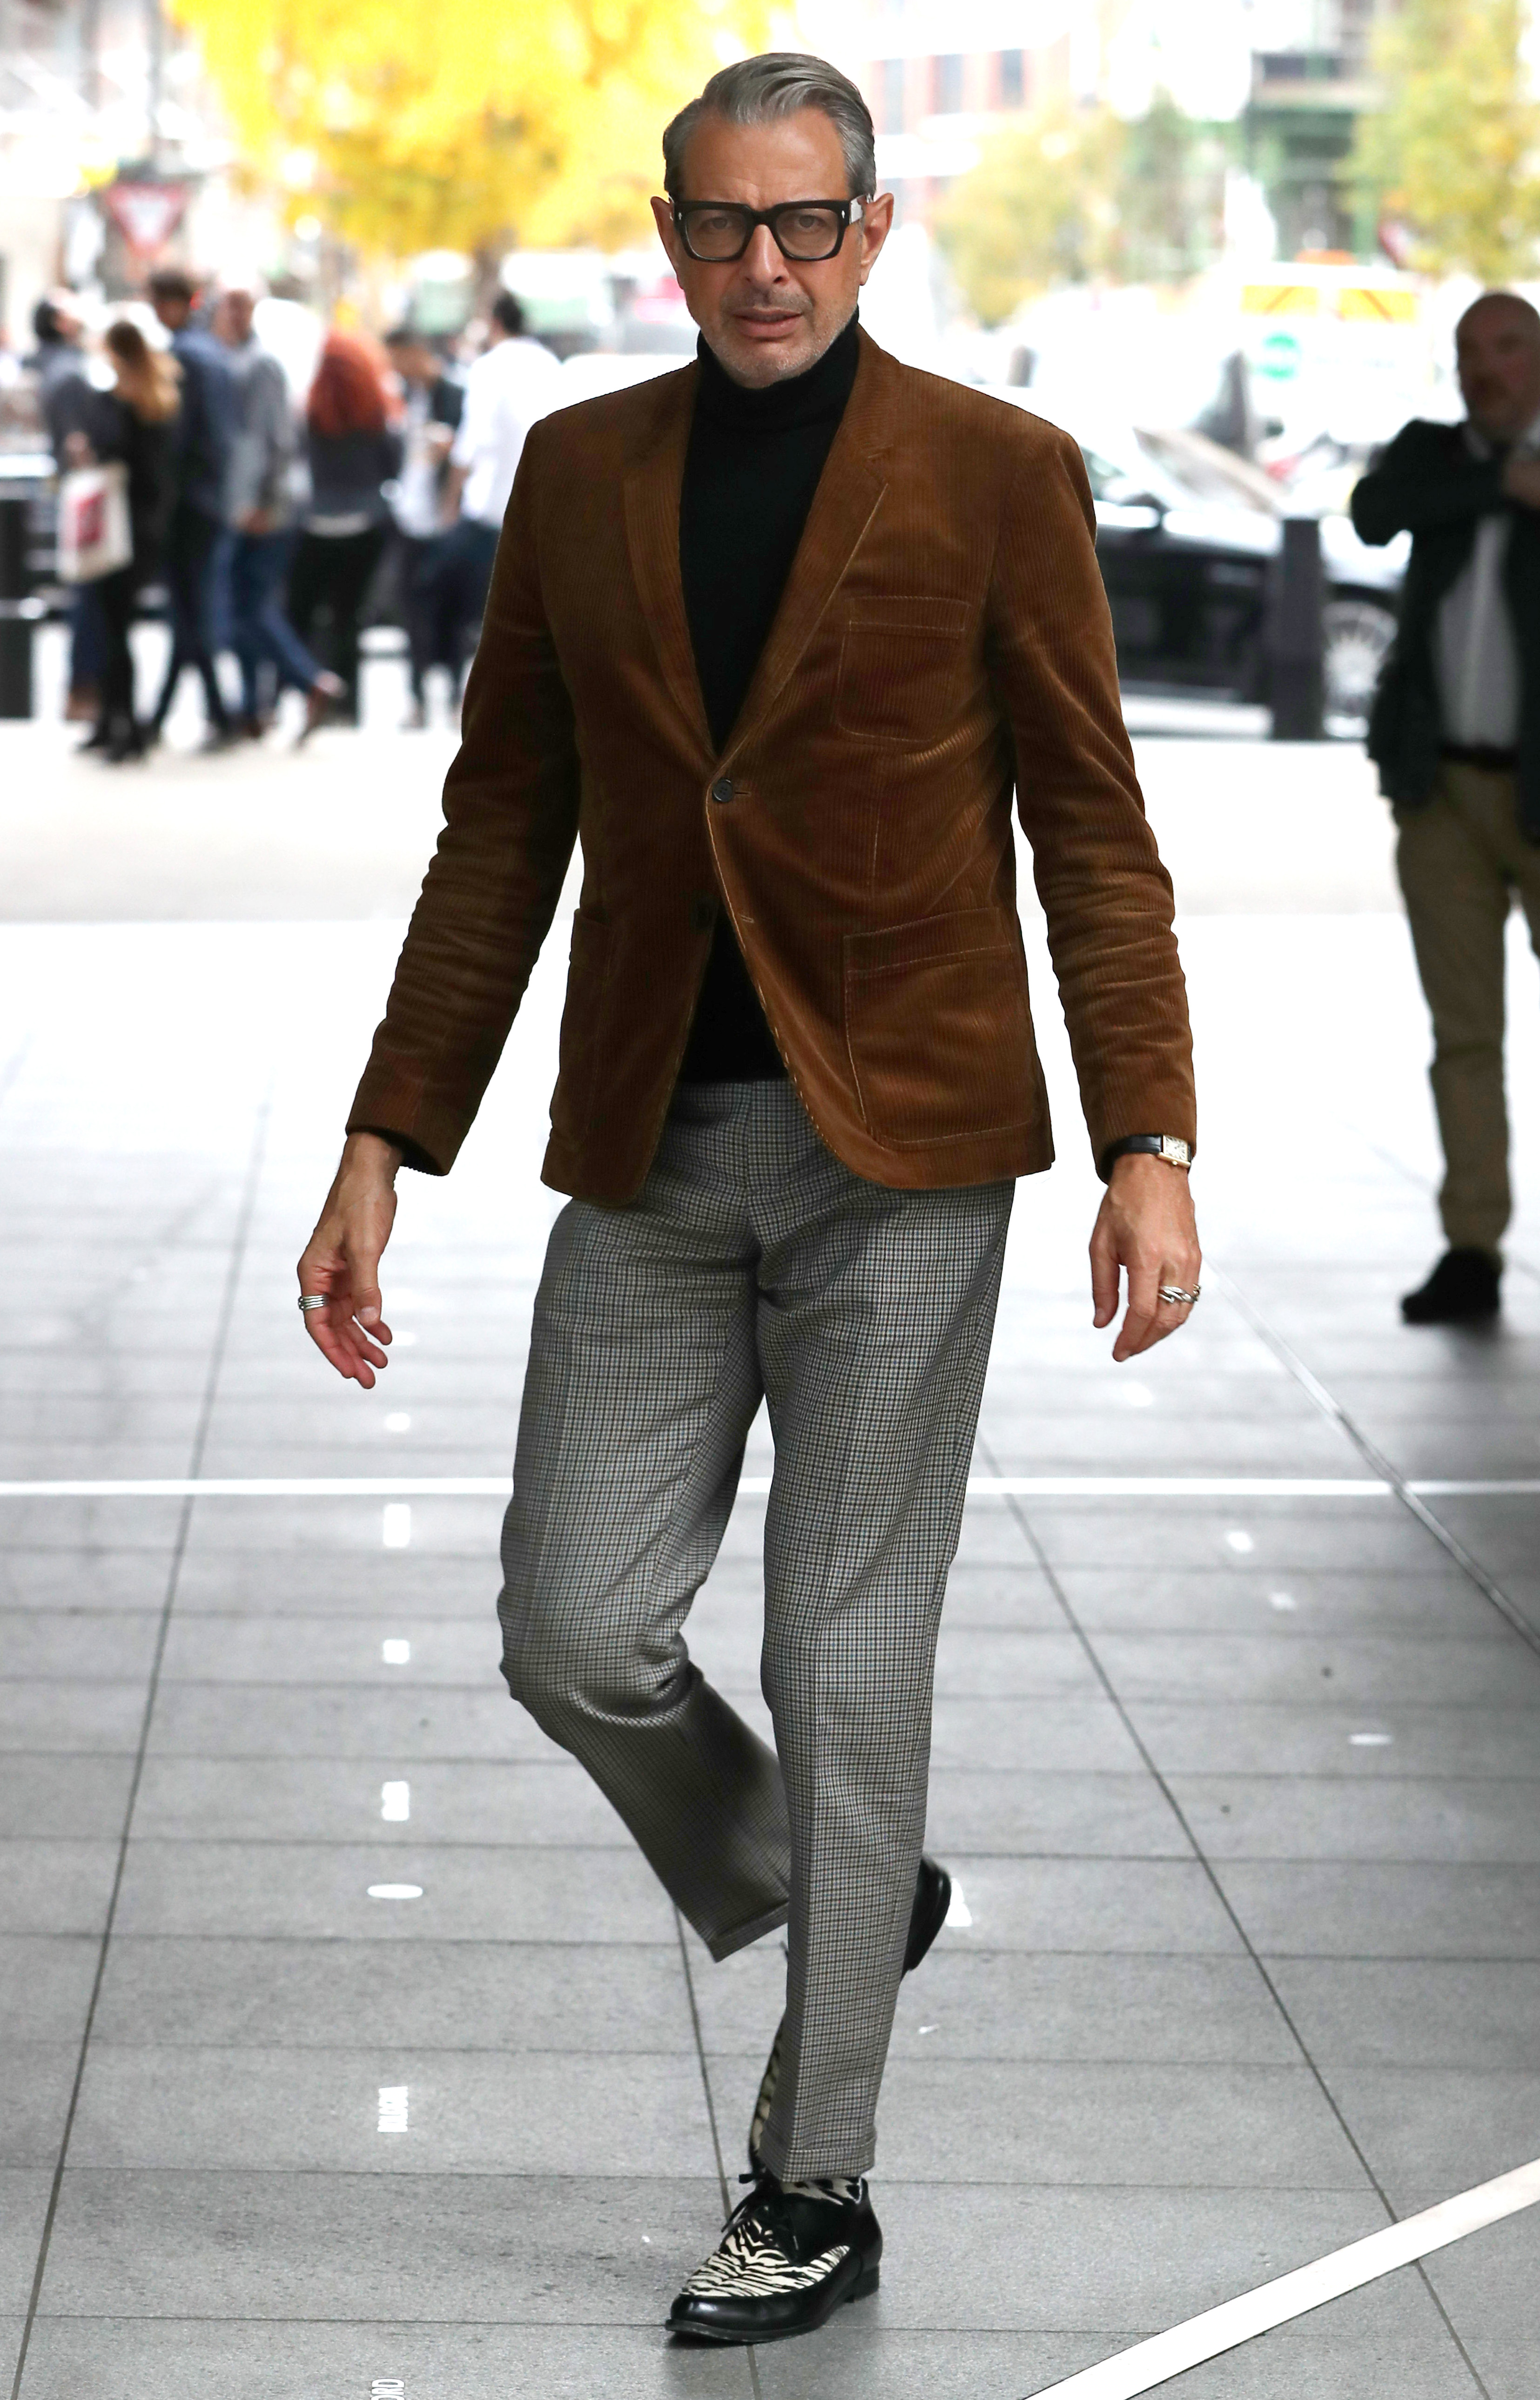 Heading to the BBC Radio 1 studios in London in November, Jeff Goldblum peacocks in one of the hottest trends in men's style: corduroy. Men conducted 507 percent more Pinterest searches for corduroy in 2018 than in the year prior, the visually-driven social media company said.